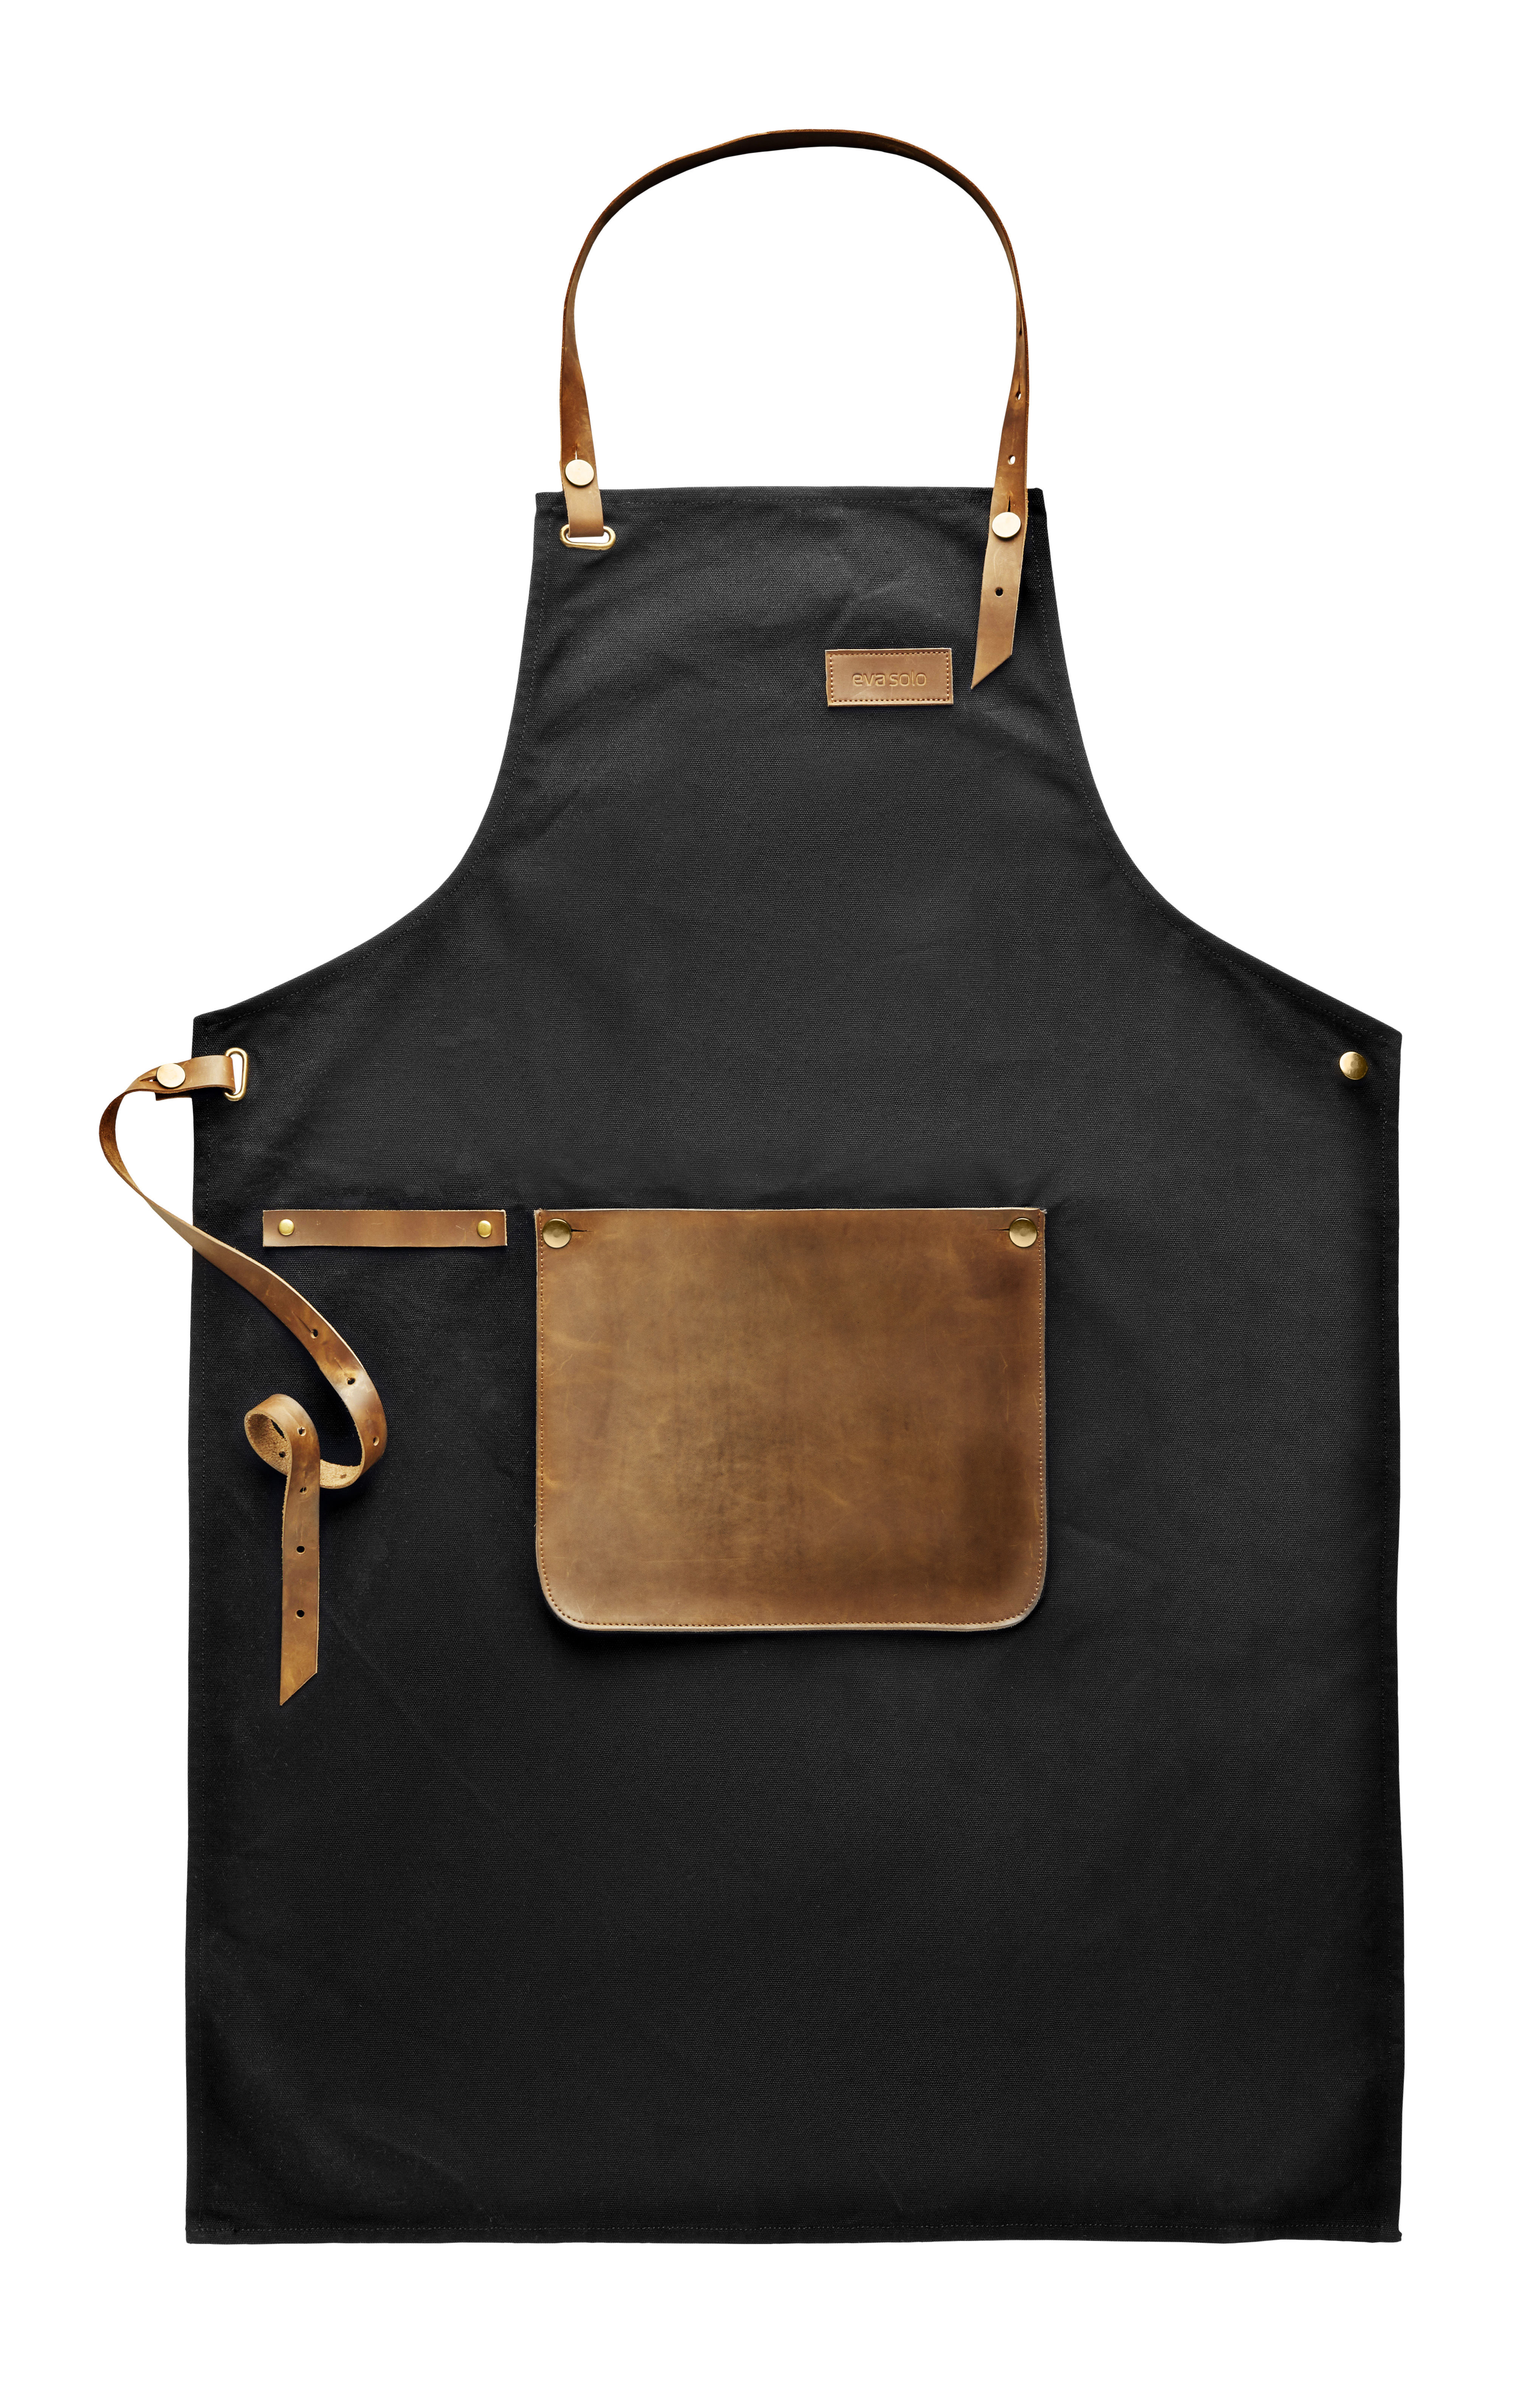 Kitchenware - Tea Towels & Aprons - Apron - / Leather and cloth by Eva Solo - Black / Brown leather - Cloth, Genuine leather